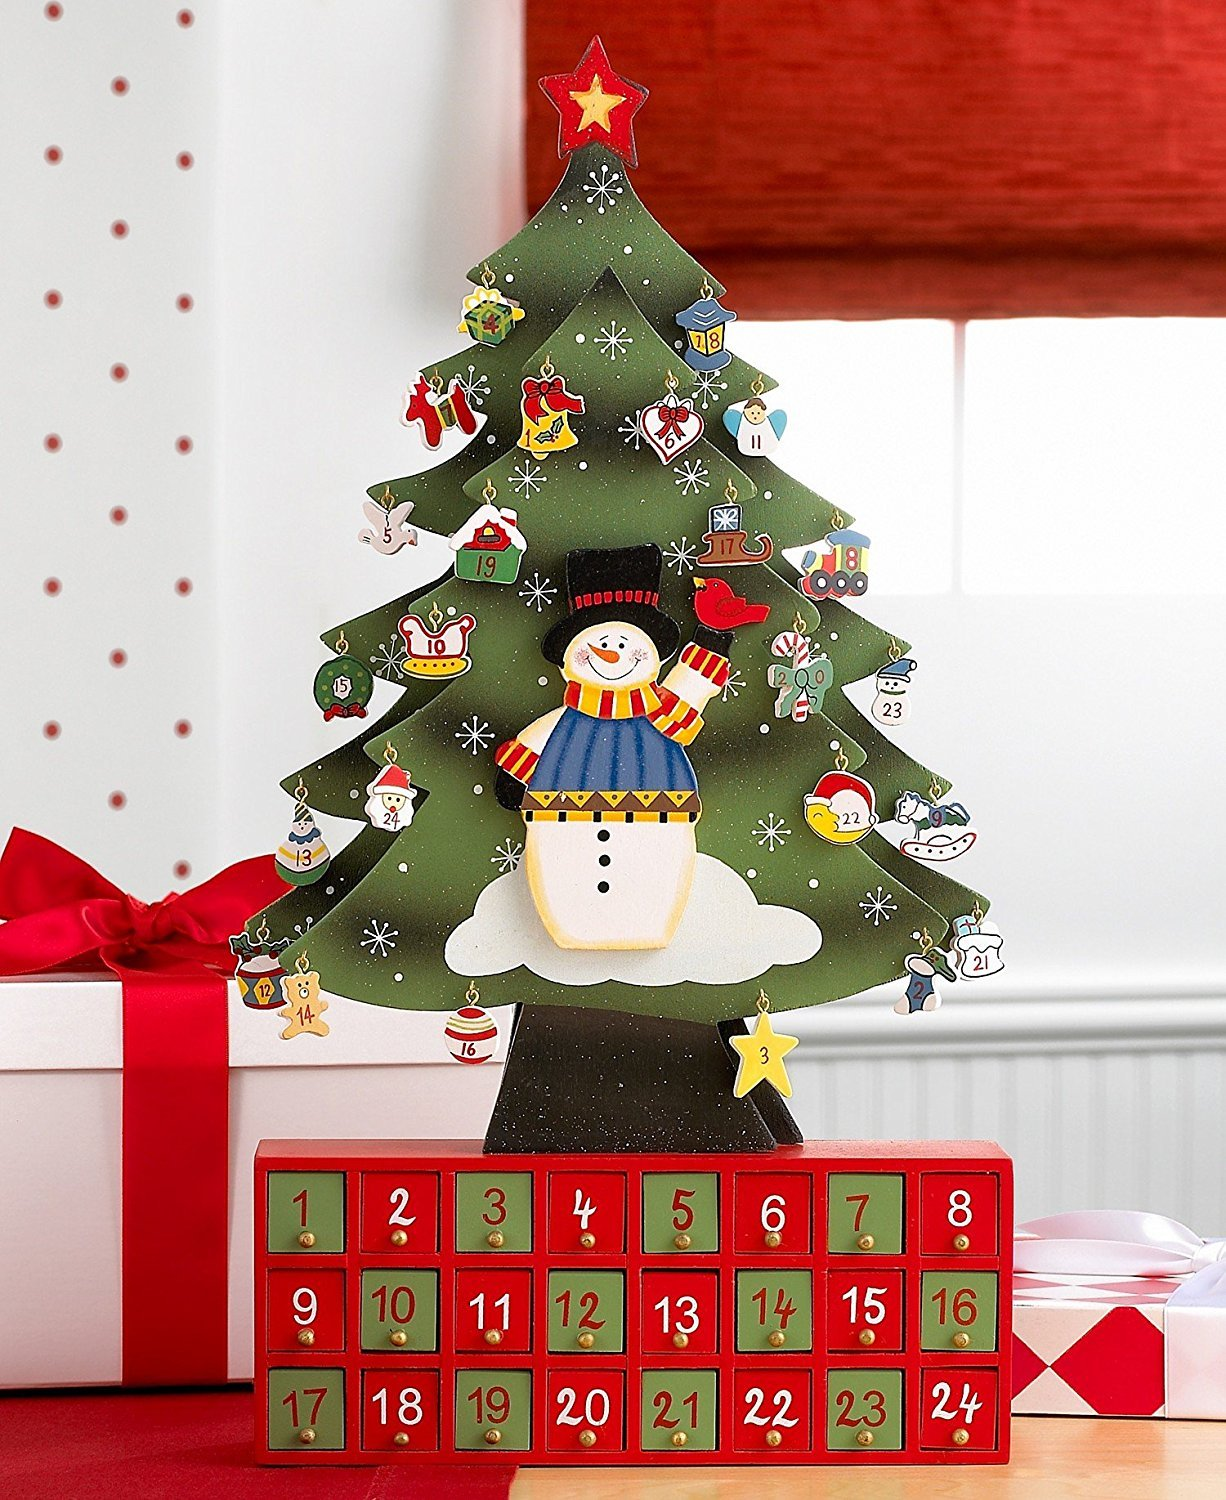 amazoncom cp toys christmas tree snowman advent calendar with ornaments wood crafted toys games - Amazon Christmas Tree